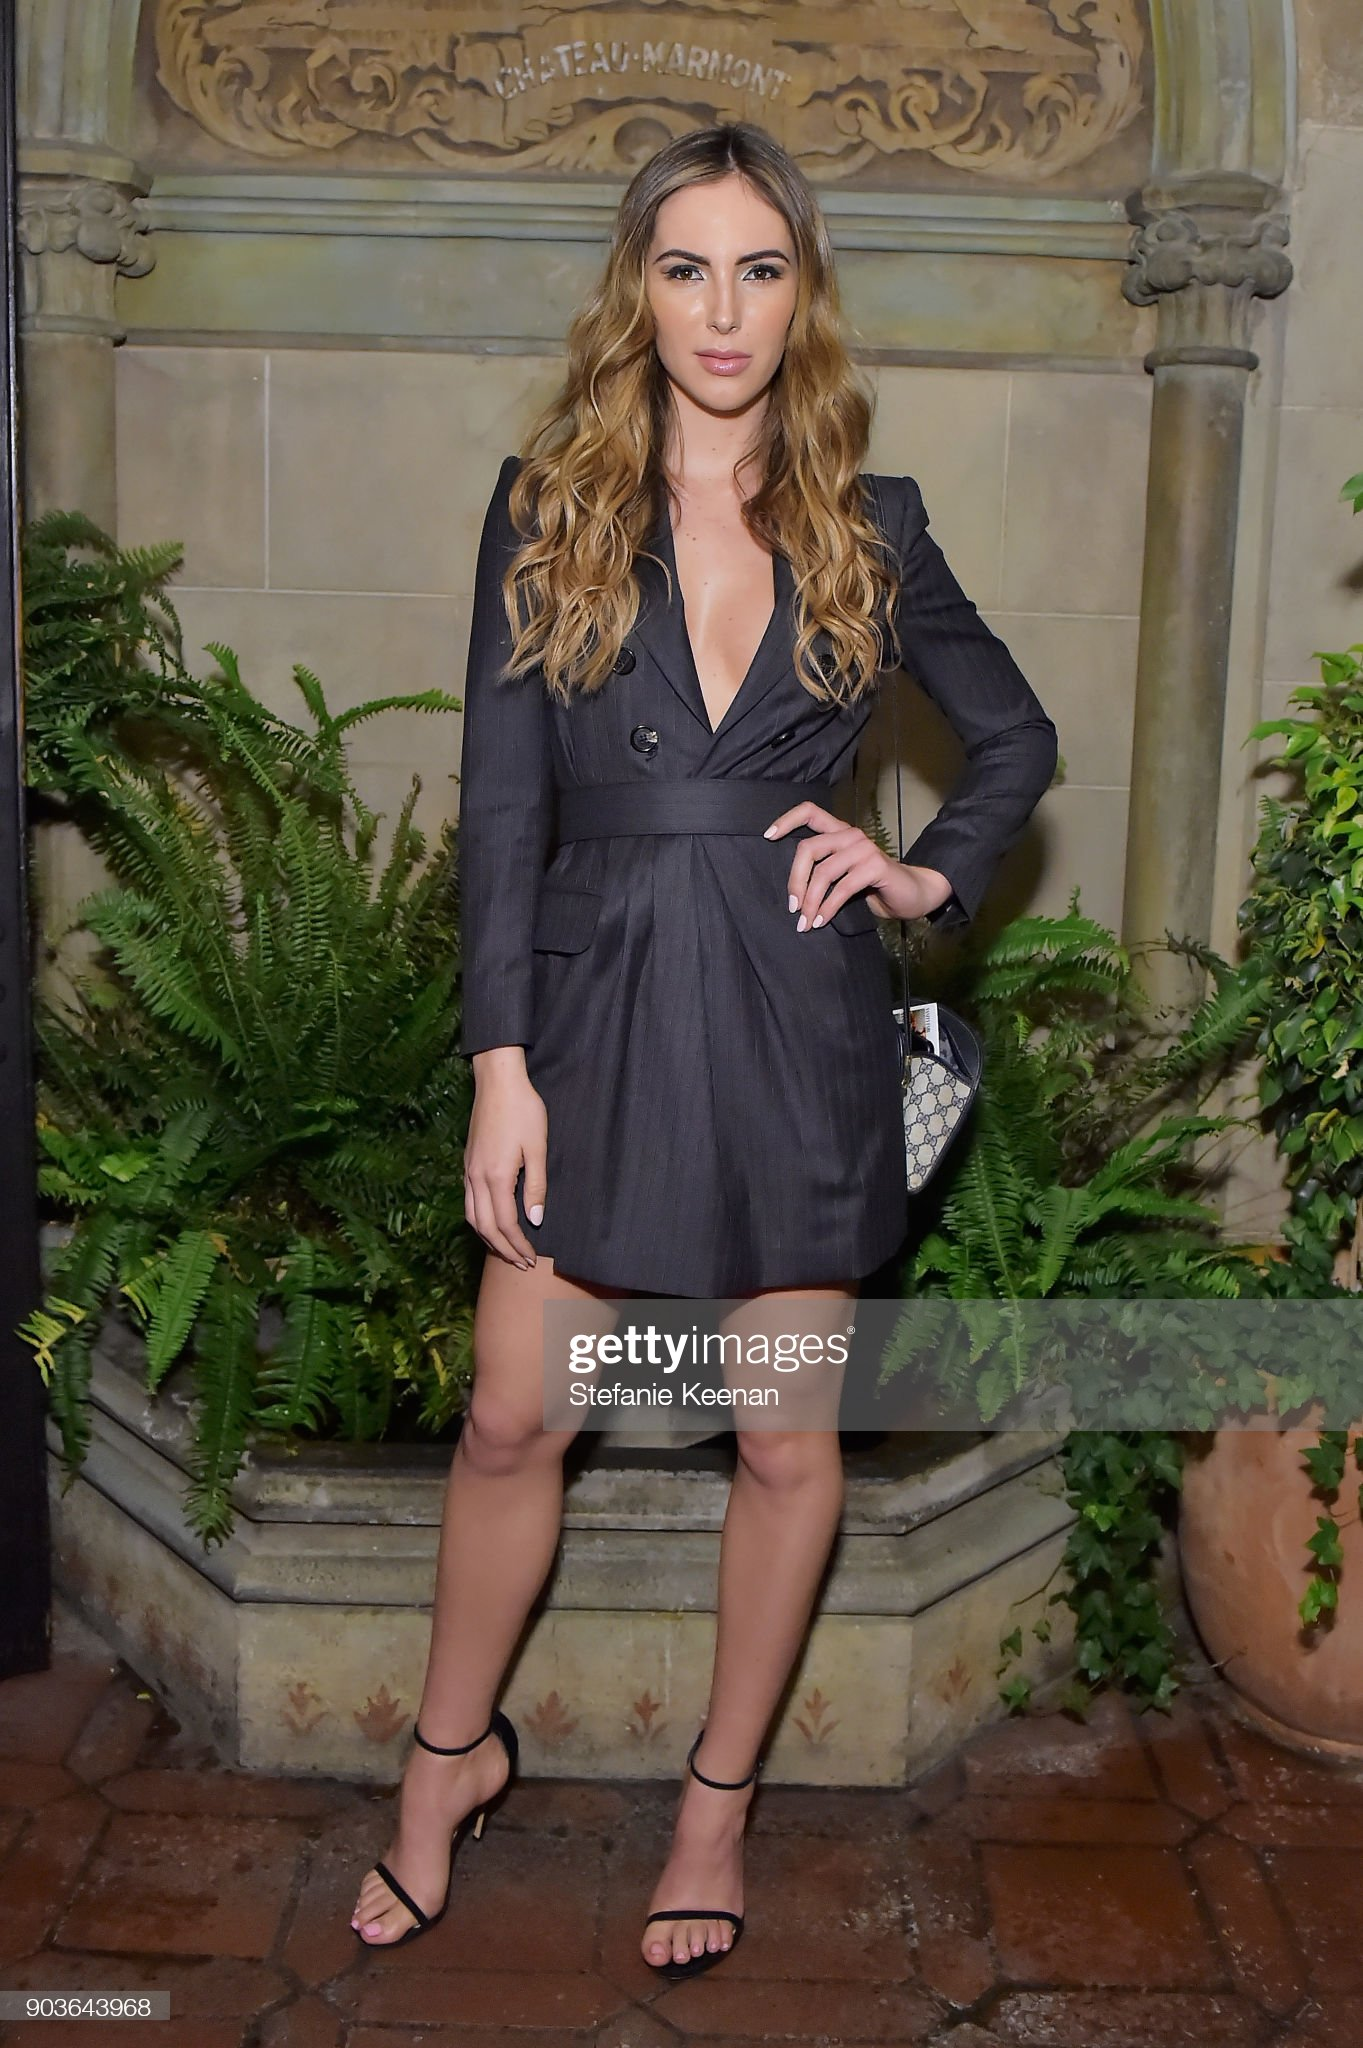 Top 80 Famosas Foroalturas - Página 2 Brittny-ward-attends-vanity-fair-and-focus-features-celebrate-the-picture-id903643968?s=2048x2048